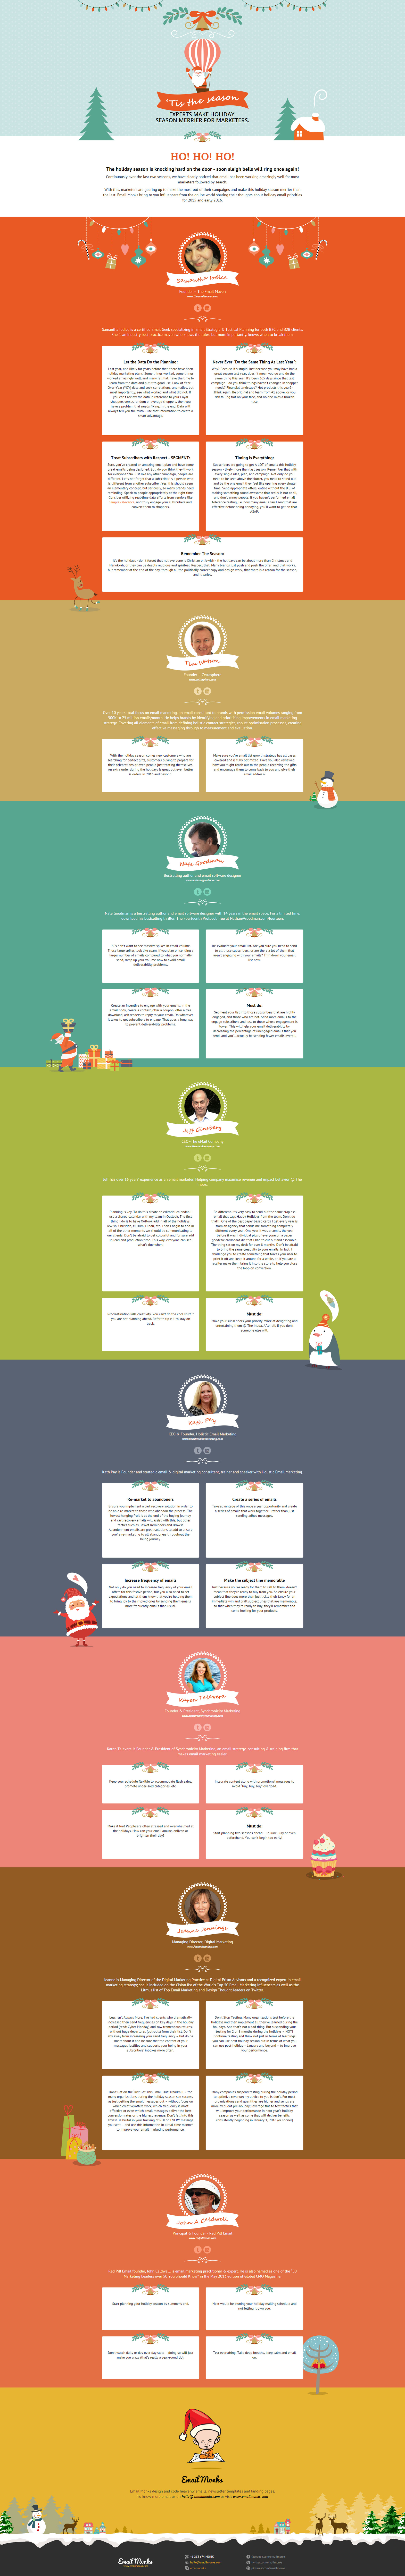 Infographic: Holiday email marketing tips & priorities from top influencers.